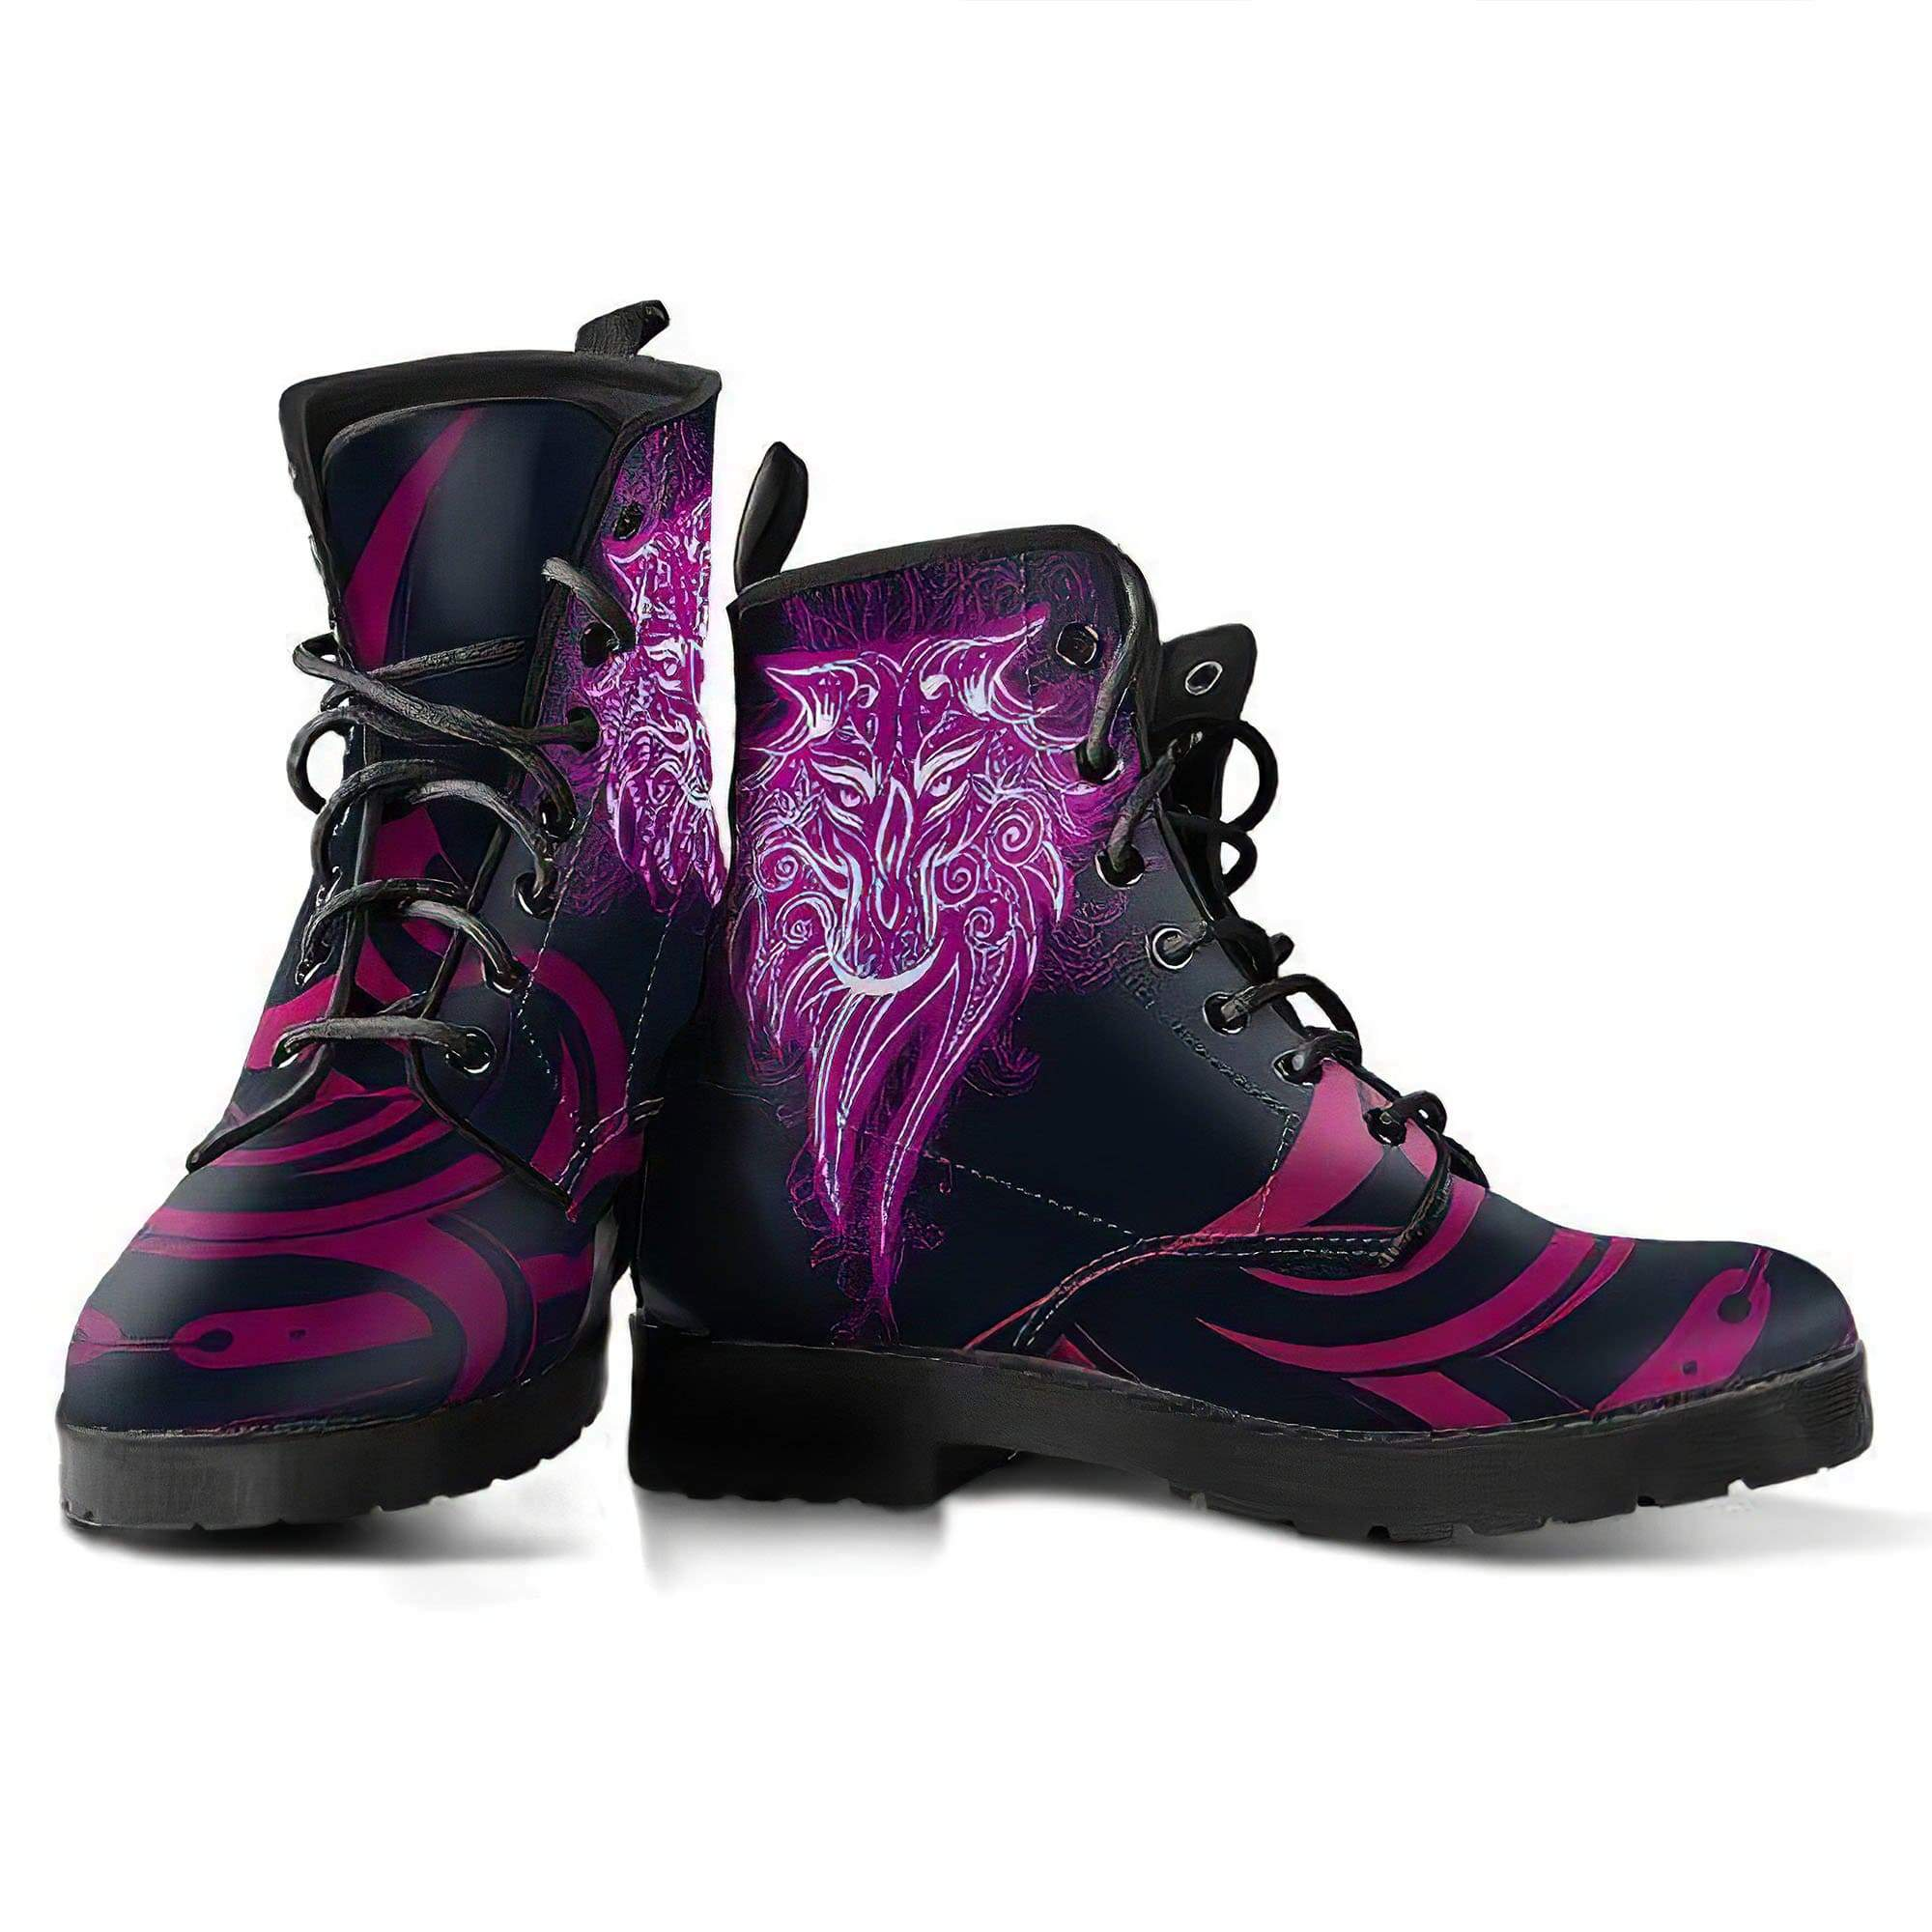 Tribal Wolf - Women's Leather Boots Women's Leather Boots